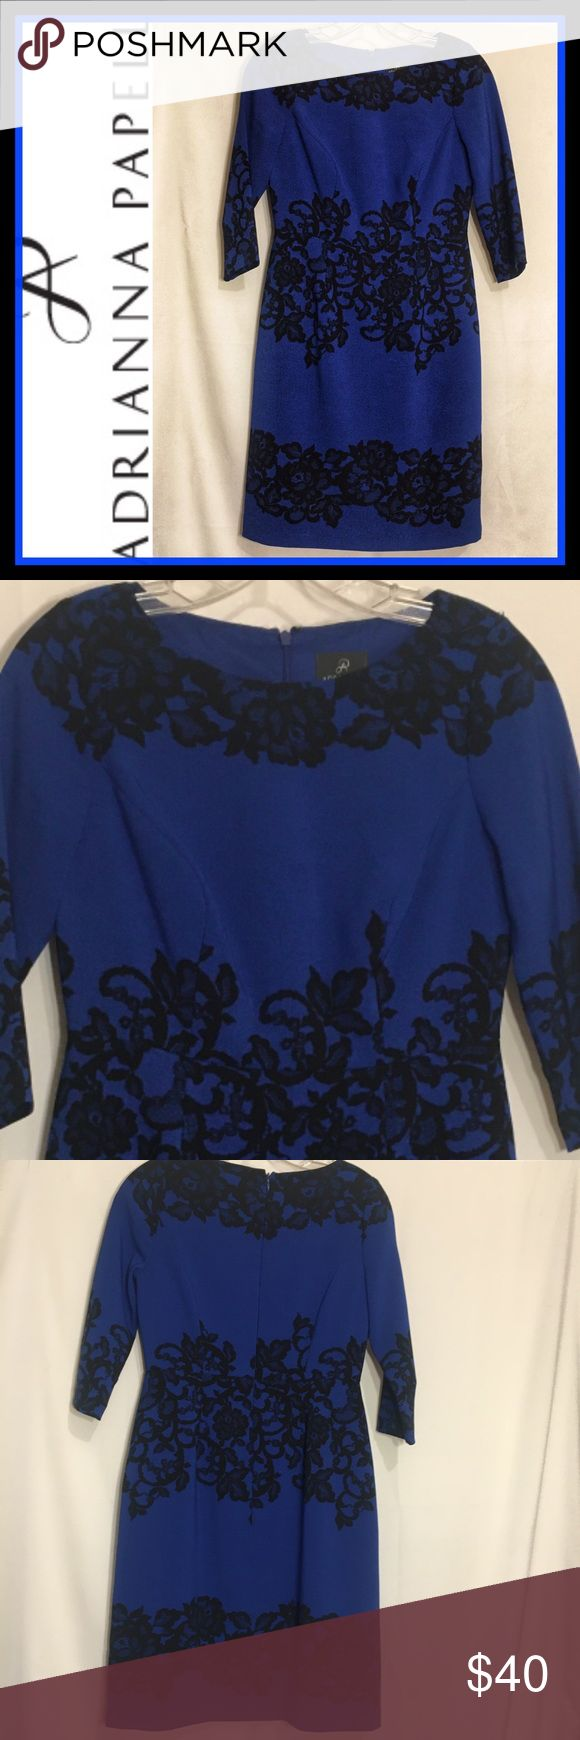 NWOT ADRIANNA PAPELL Blue w/Black Sheath Dress 4P NEW WITHOUT TAGS ADRIANNA PAP…